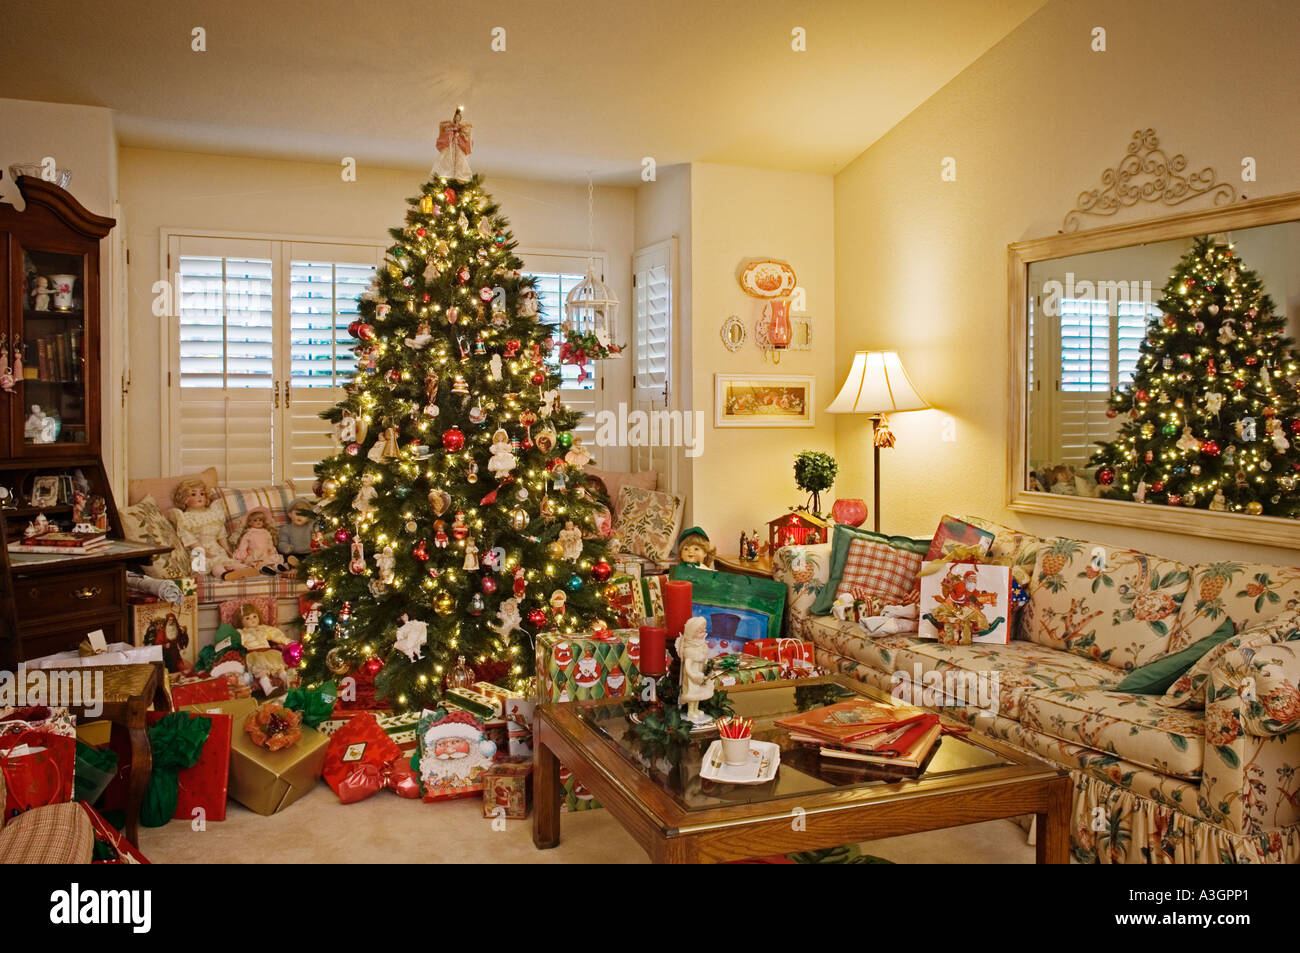 Christmas tree decorations and gifts in living room of upscale